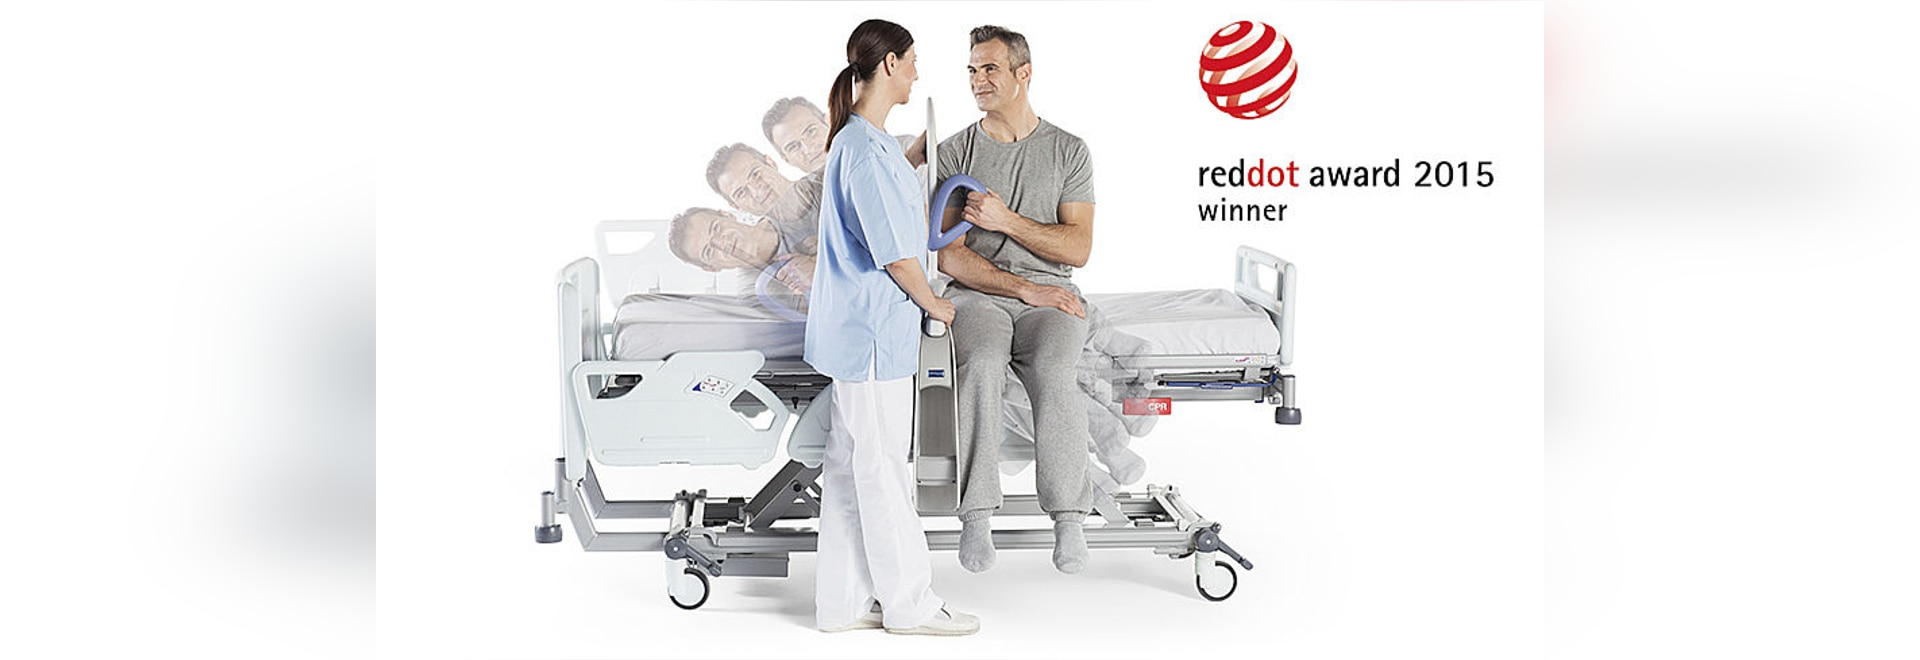 ArjoHuntleigh receives Red Dot design award for device saving caregivers' backs during manual patient transfer